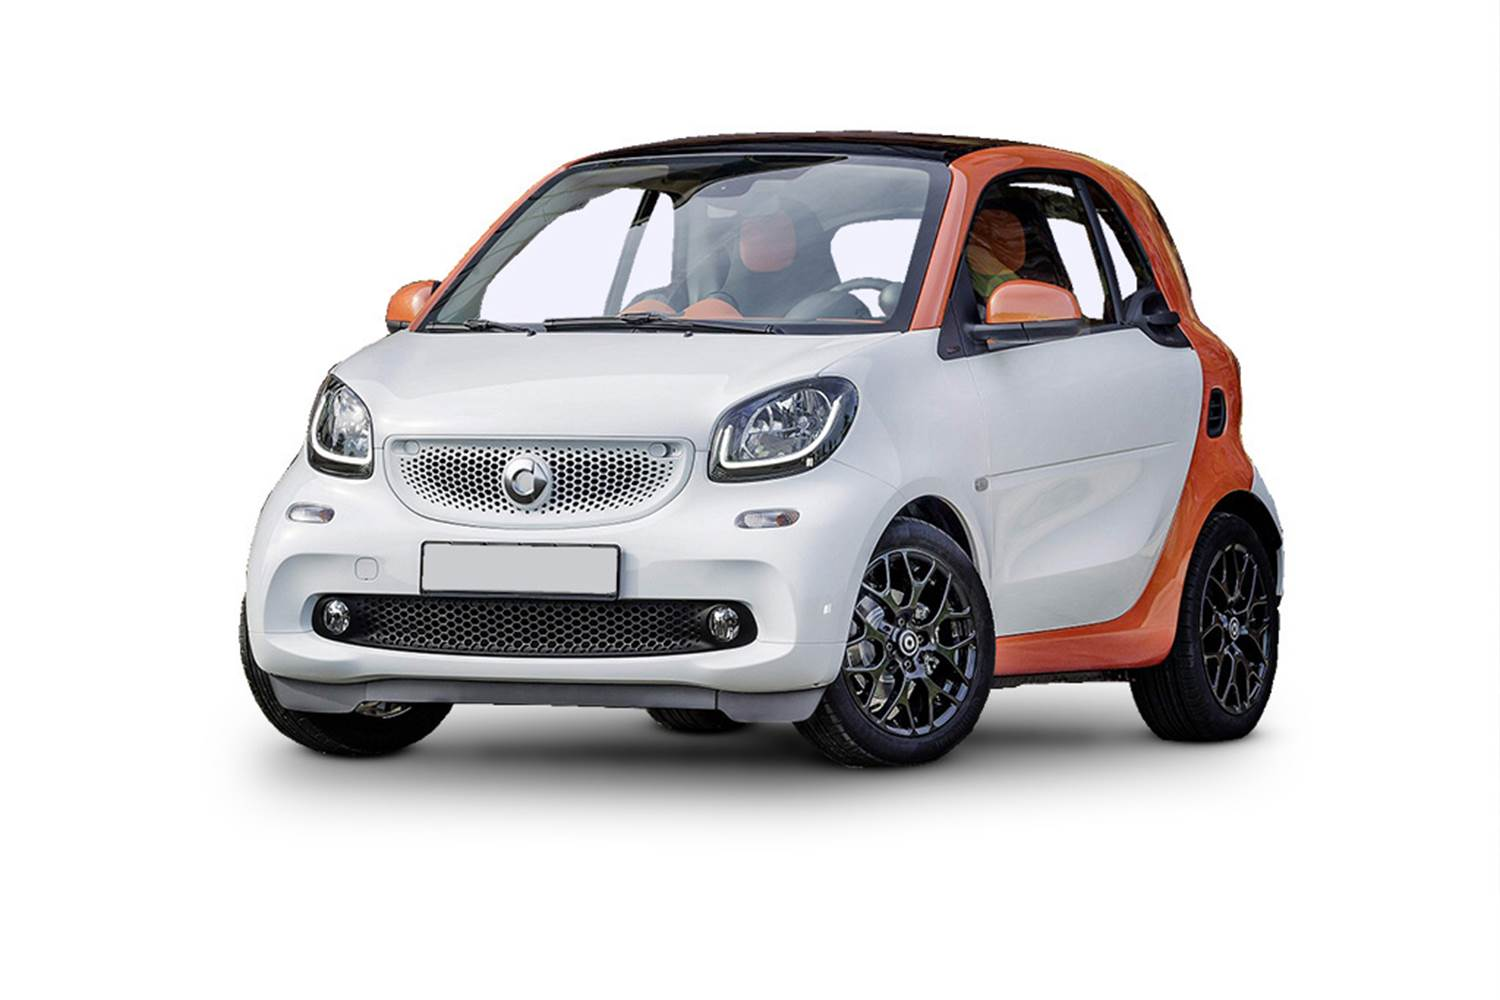 SMART FORTWO - (Gruppo A)